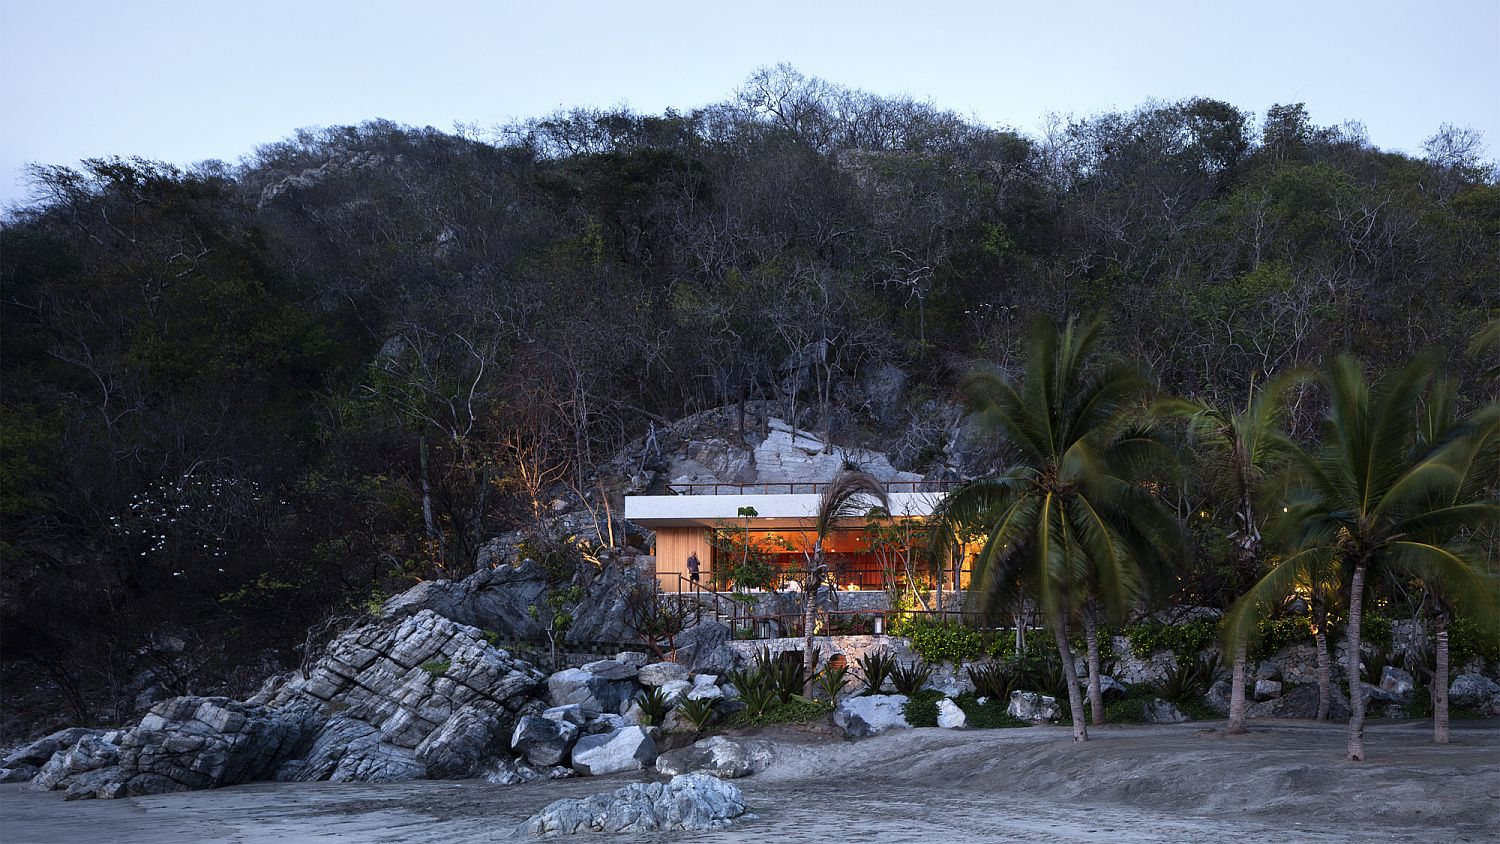 Stunning coastal home in San Juan de Alima, Mexico becomes one with the landscape